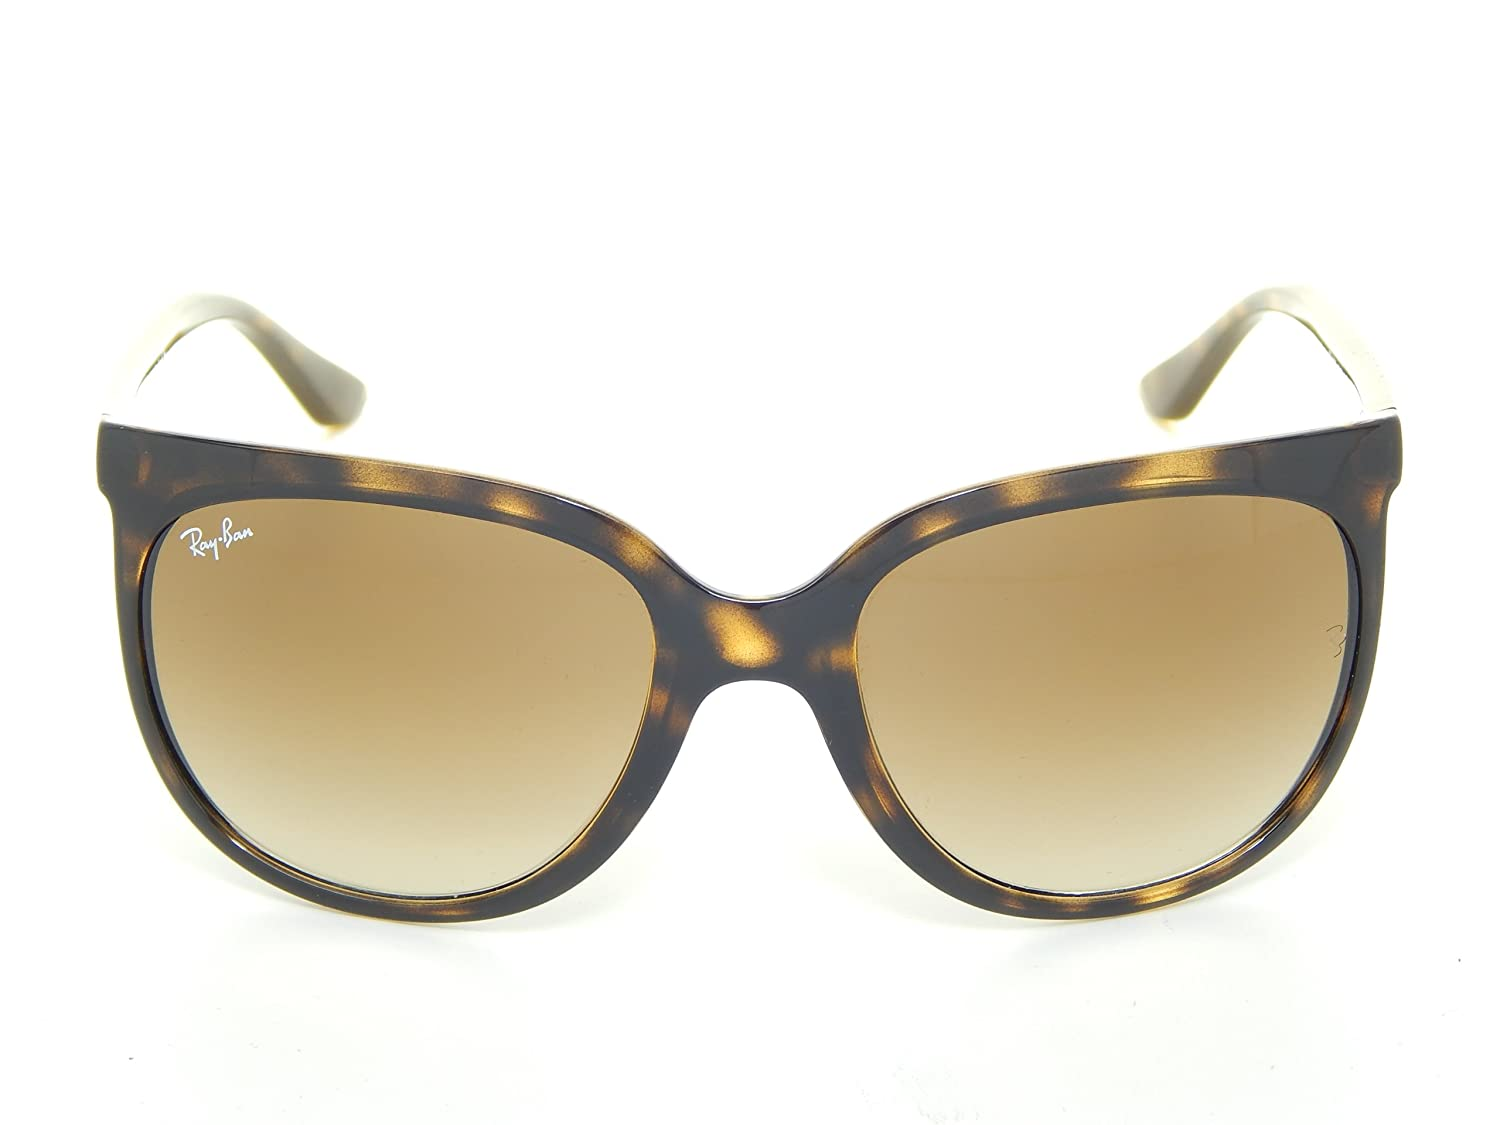 9b358742d7b Ray Ban RB4126 Cats 1000 Sunglasses Review - YouTube